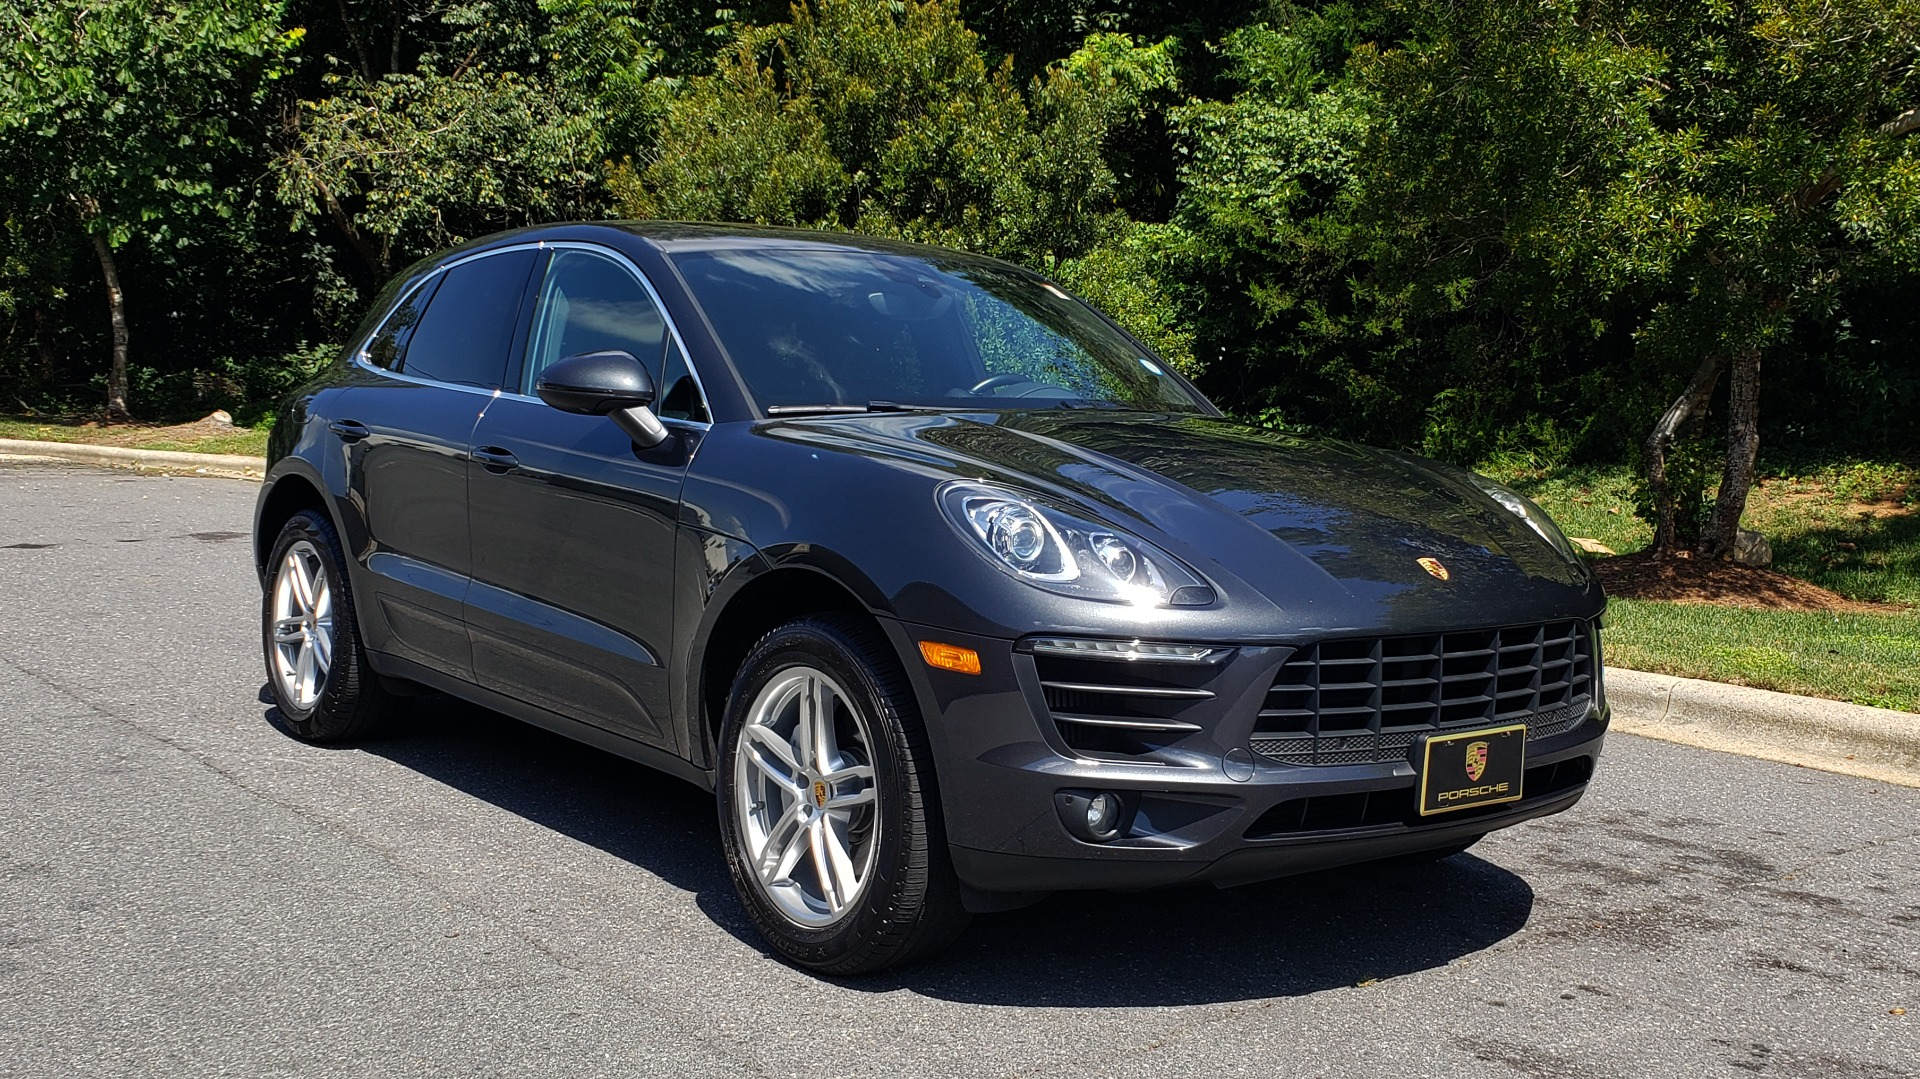 Used 2017 Porsche MACAN S PREMIUM PKG / NAV / BOSE / SUNROOF / REARVIEW for sale Sold at Formula Imports in Charlotte NC 28227 3